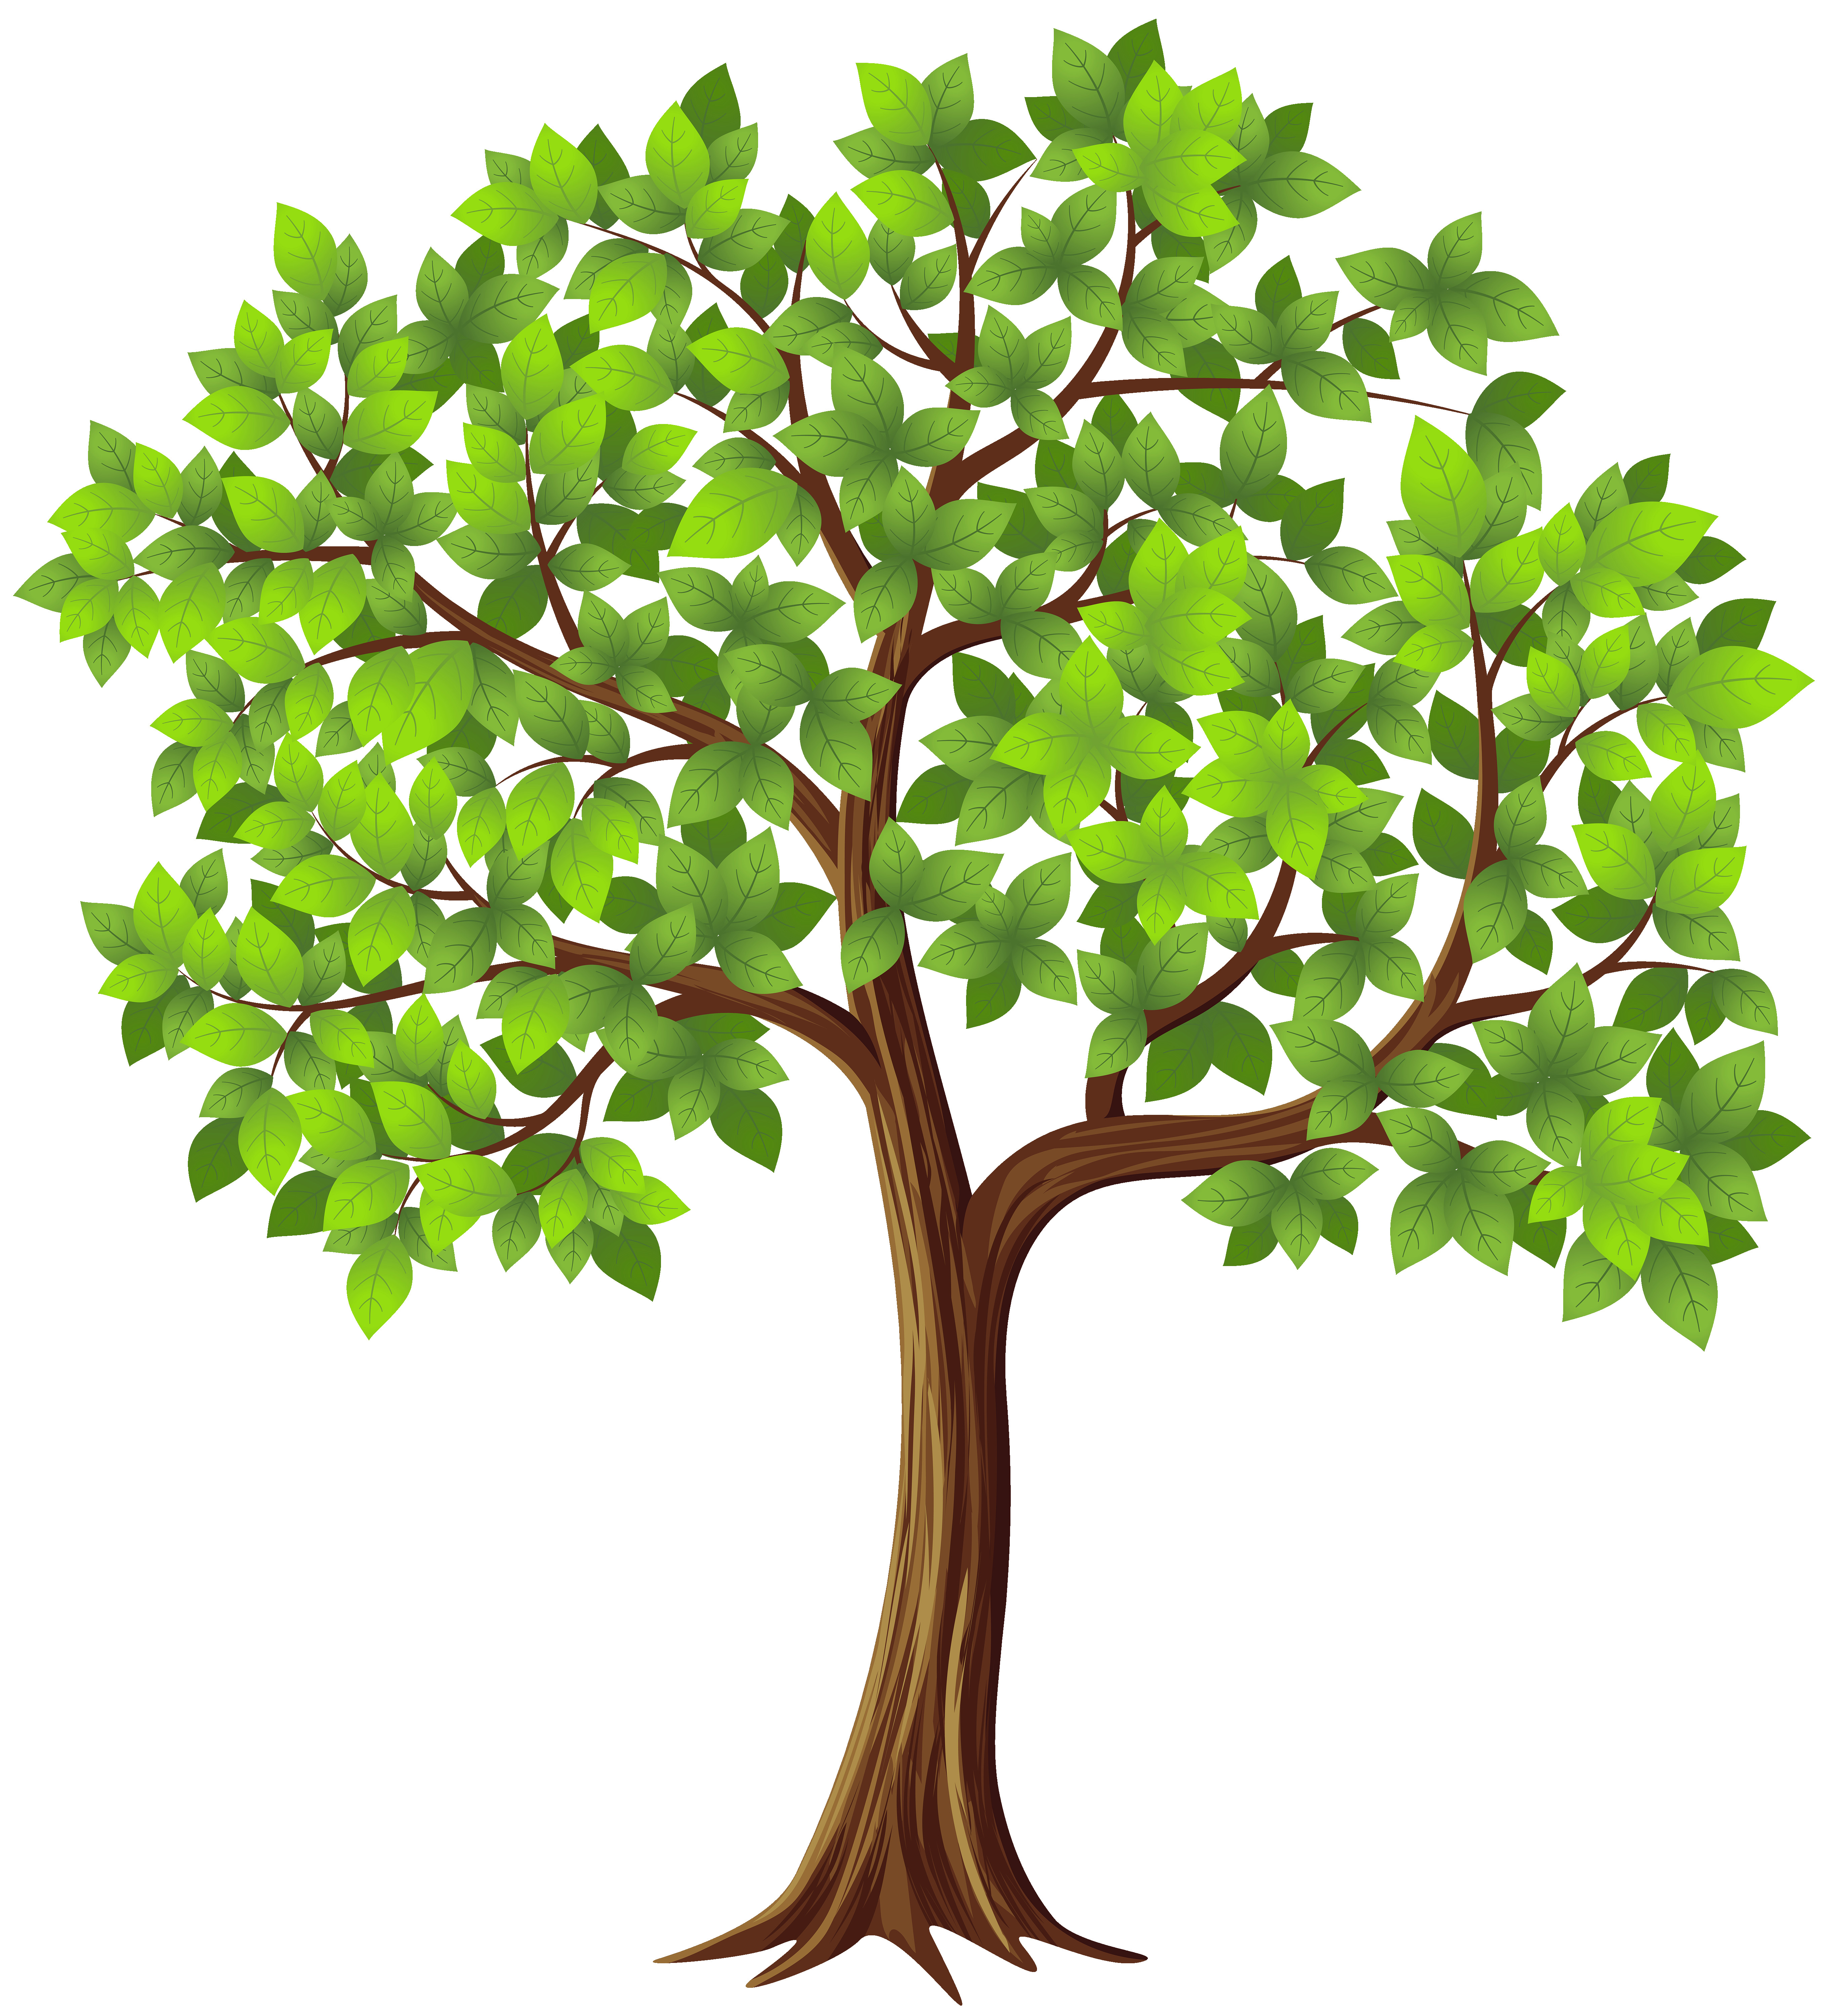 tree of life clipart at getdrawings com free for personal use tree rh getdrawings com tree of life clipart black and white tree of life clipart images